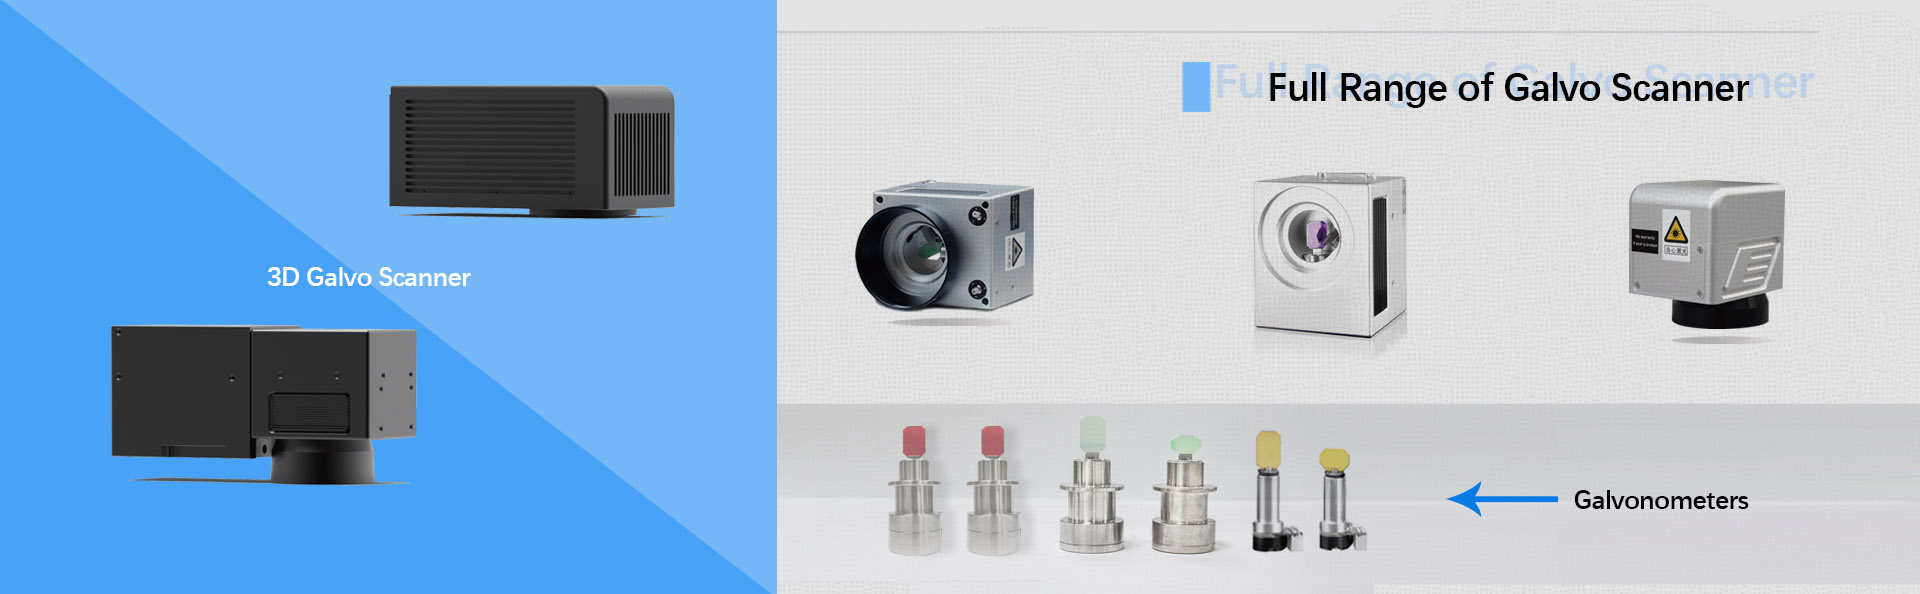 2D and 3D laser galvo scanner head with high quality and reliability from China.